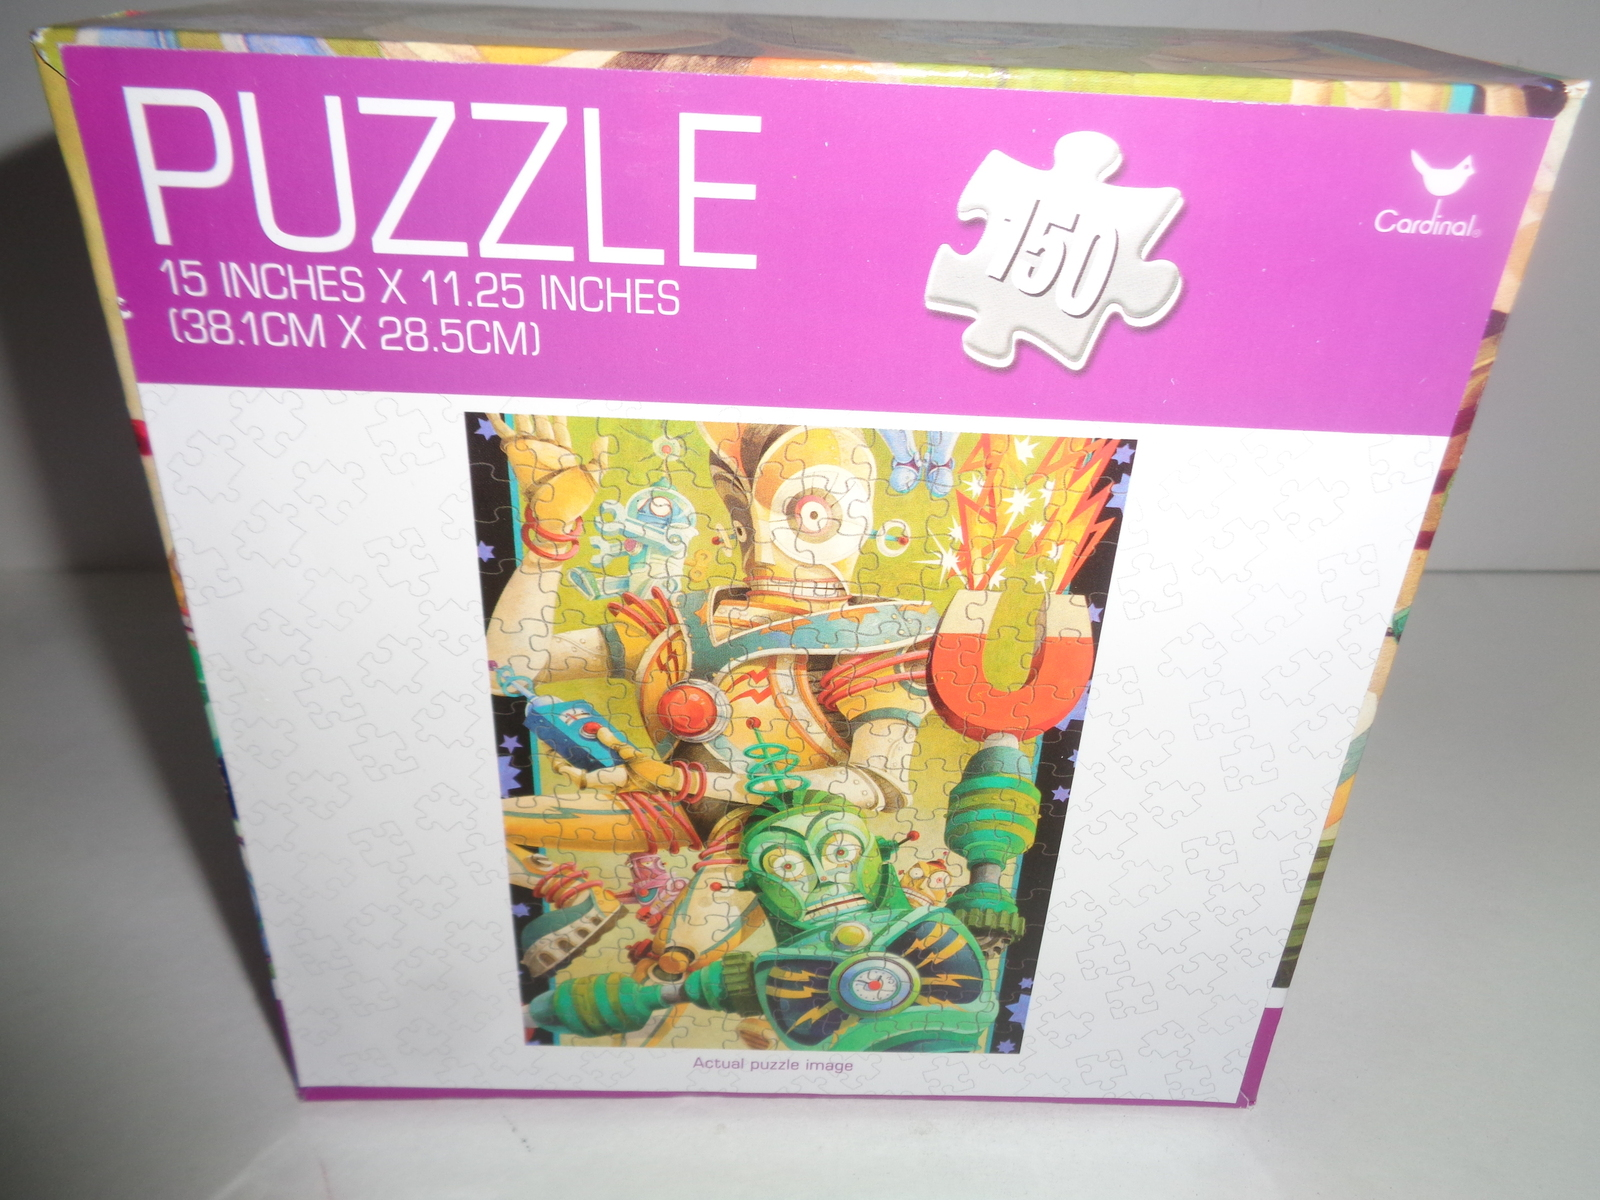 "ROBOTS Puzzle 150 Piece New in Sealed Box 15""x 11.25"""